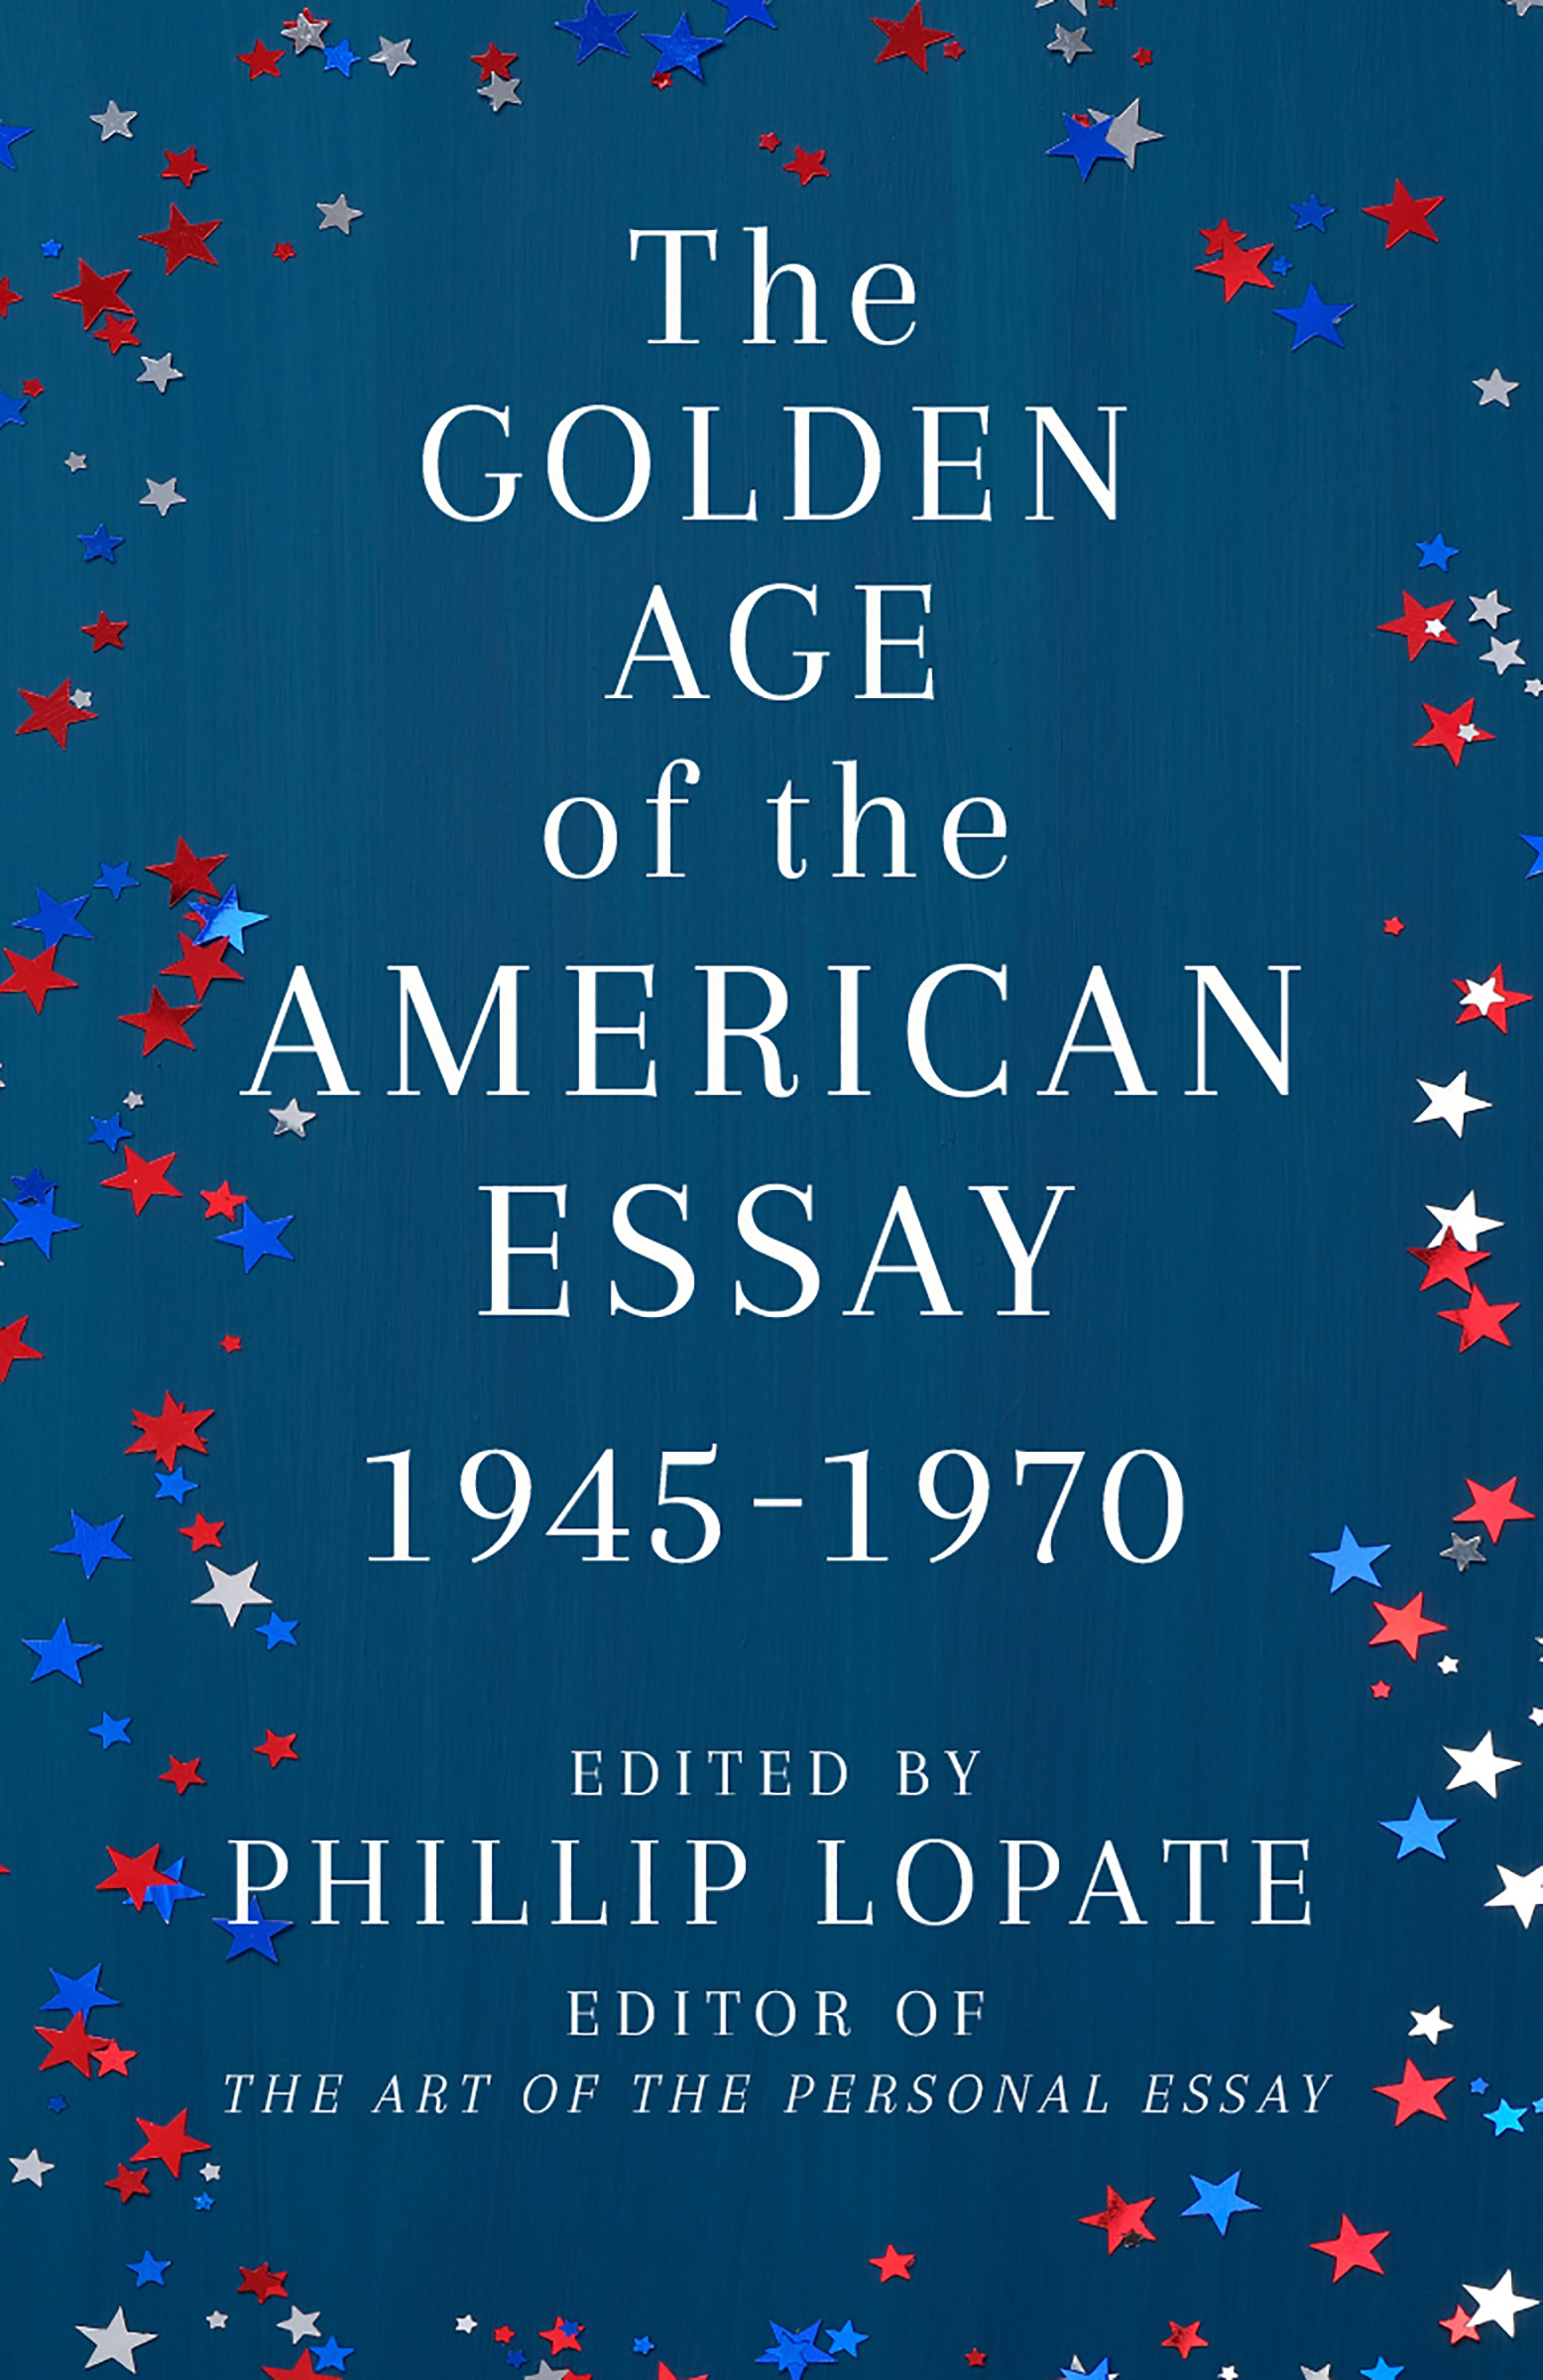 Virtual Book Launch: The Golden Age of the American Essay by Phillip Lopate